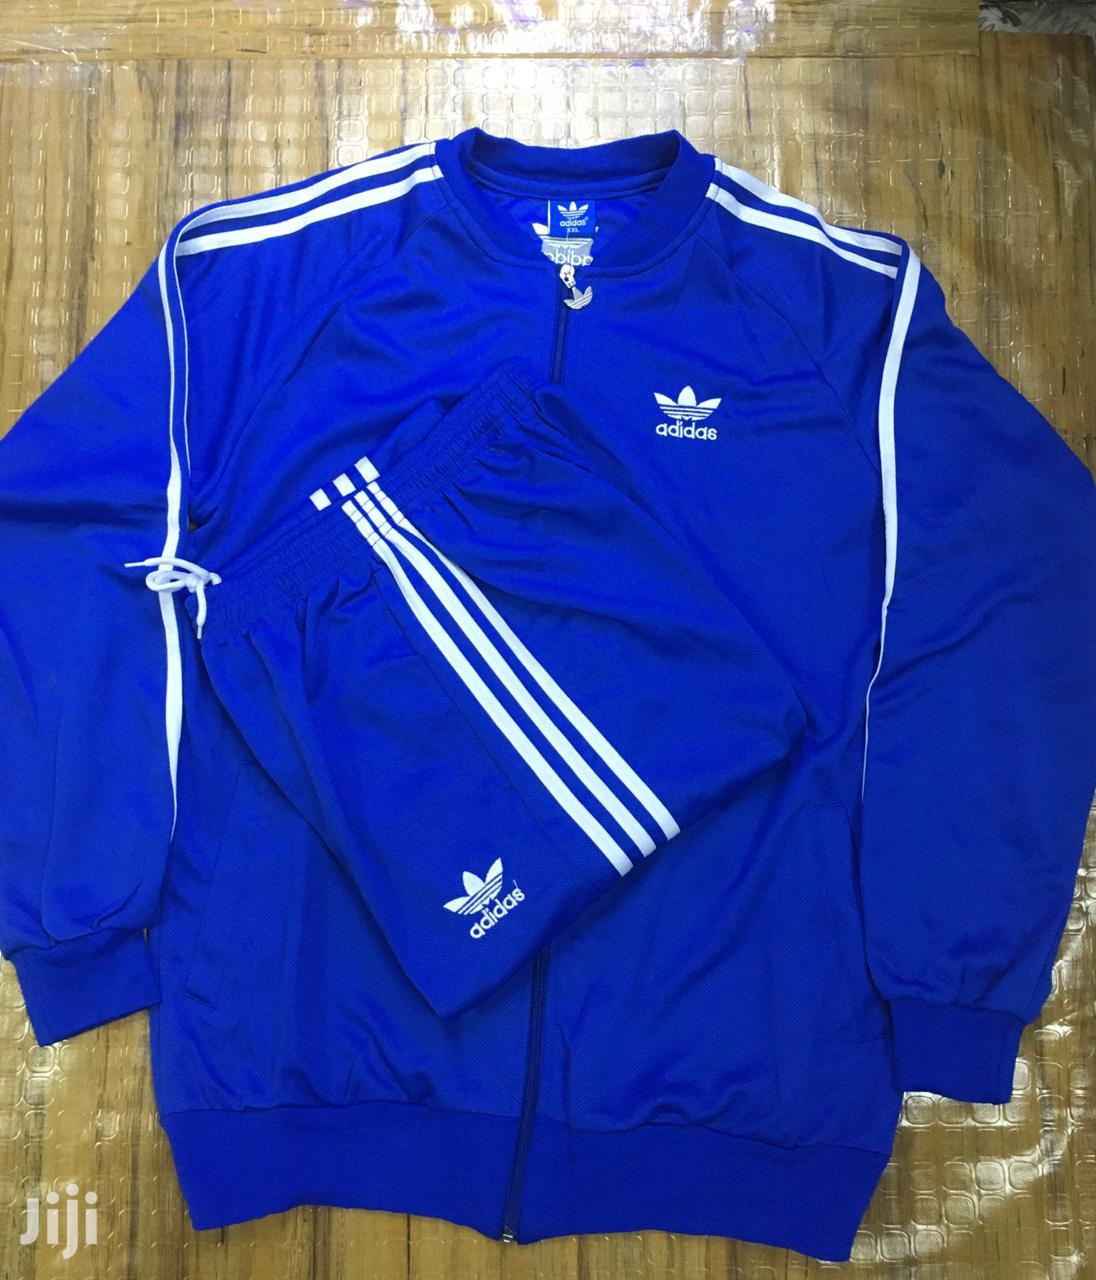 Offer On Adidas Tracksuit (Cotton)   Clothing for sale in Nairobi Central, Nairobi, Kenya